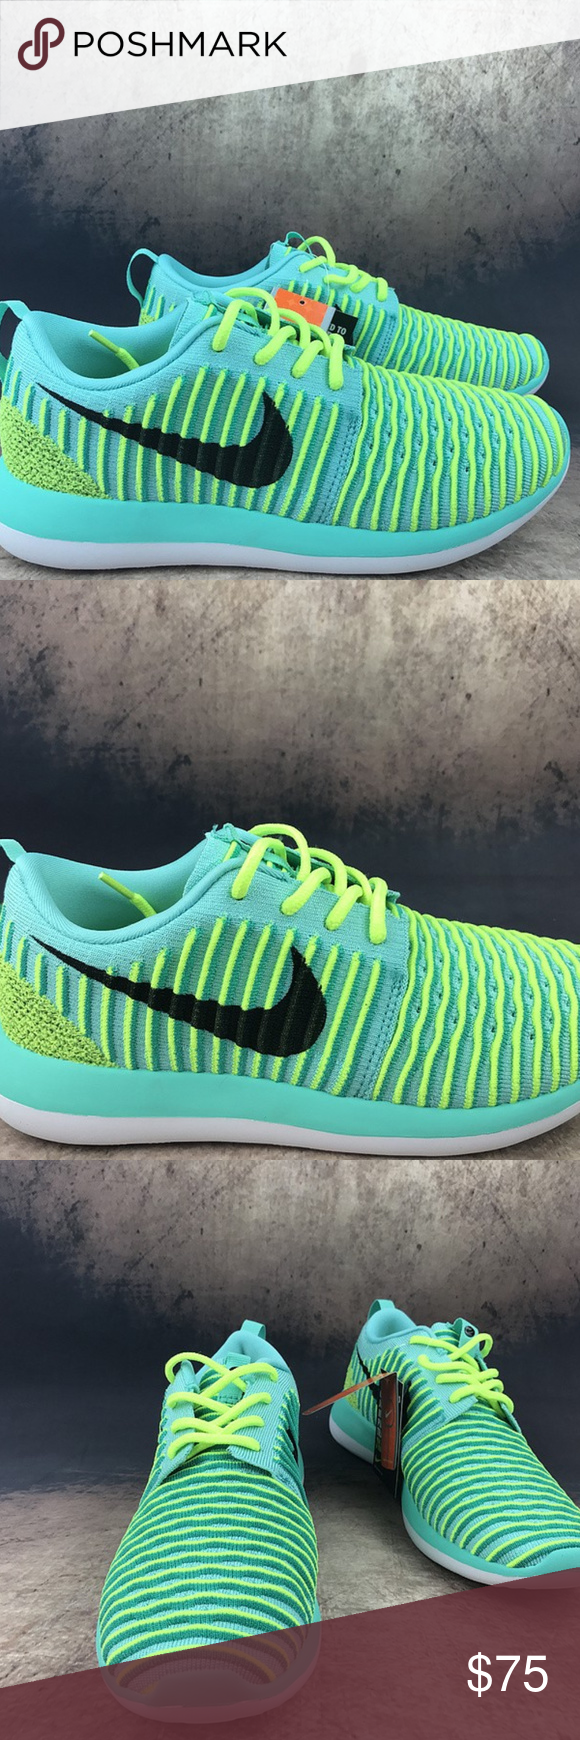 eba5e150ae61 NWT Nike Roshe Two Flyknit Running NWT Nike Roshe Two Flyknit Running Brand  New Size  6.5 Y Color   Hyper Turquoise   Black   Volt   Clear Jade Send me  a ...